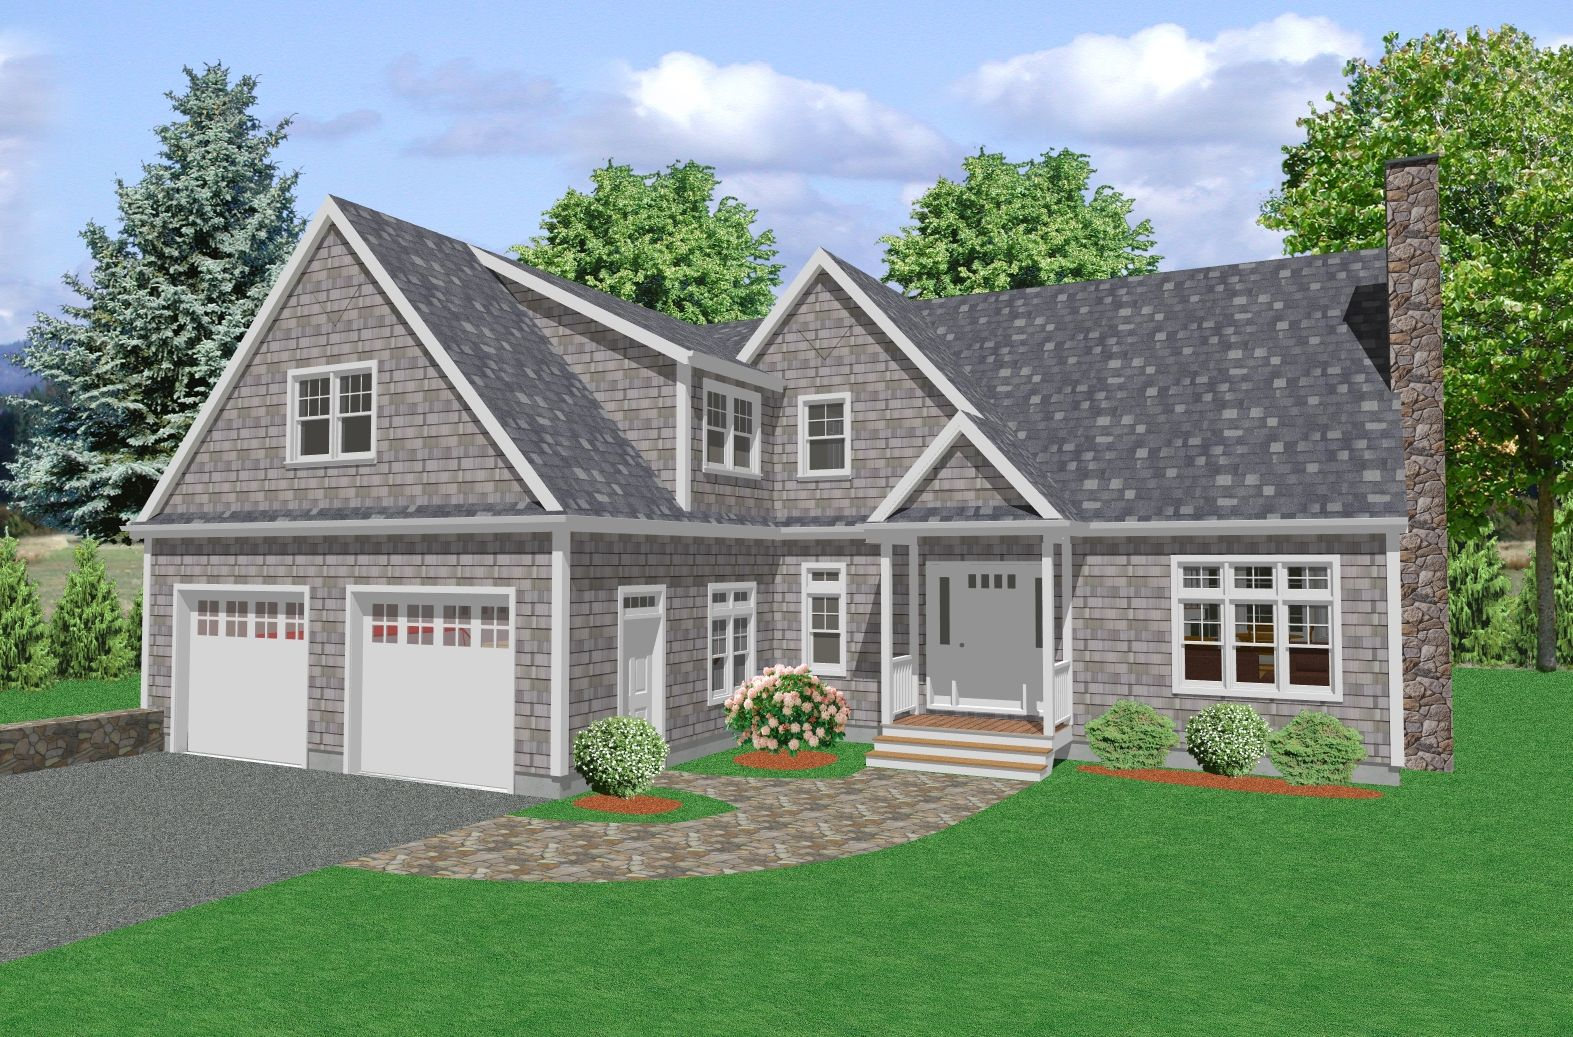 Cape cod style homes house plan two story traditional for Cape cod style home plans